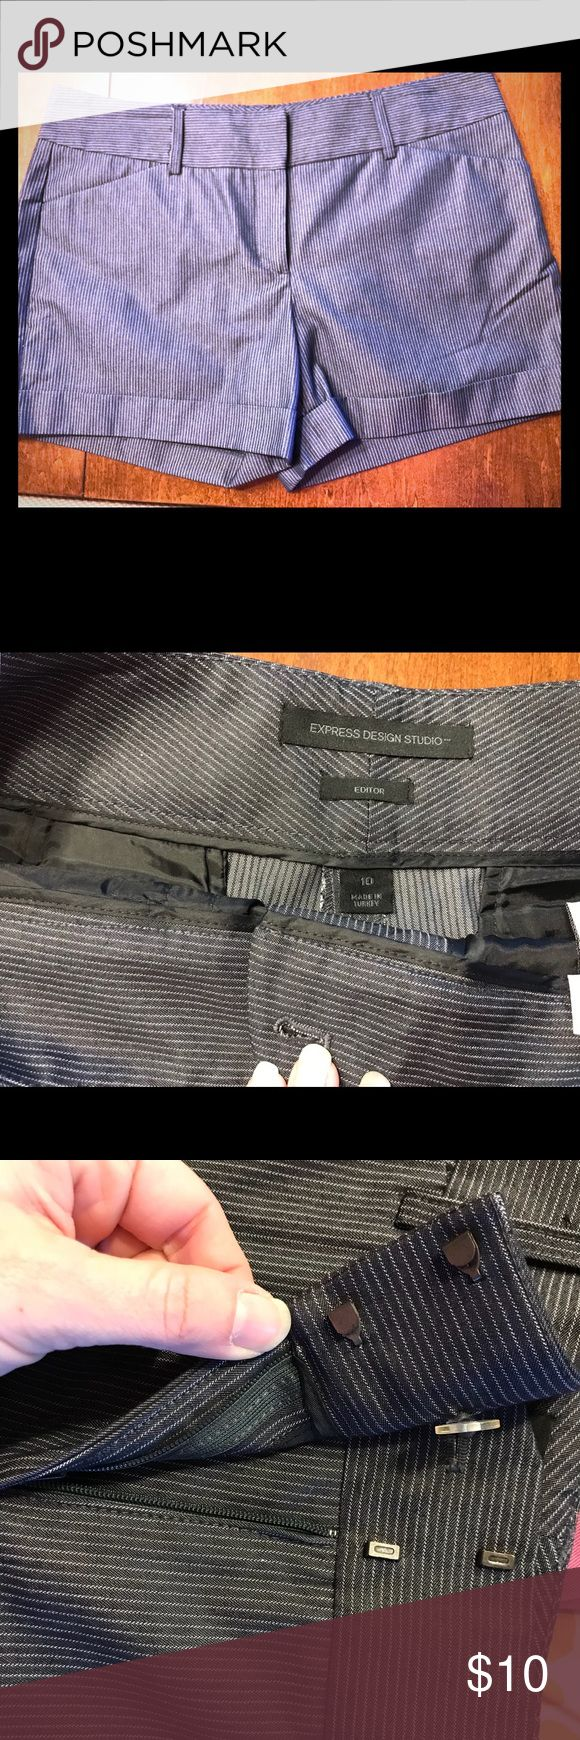 Pinstripe shorts Navy cuffed chino with silver pinstripes. Flat front pockets sit nicely and are functional. Back pockets are both functional and have button details for closure. Front closure is zipper and hook/eye. Worn once with a white blouse and wedges for an event. Express Shorts